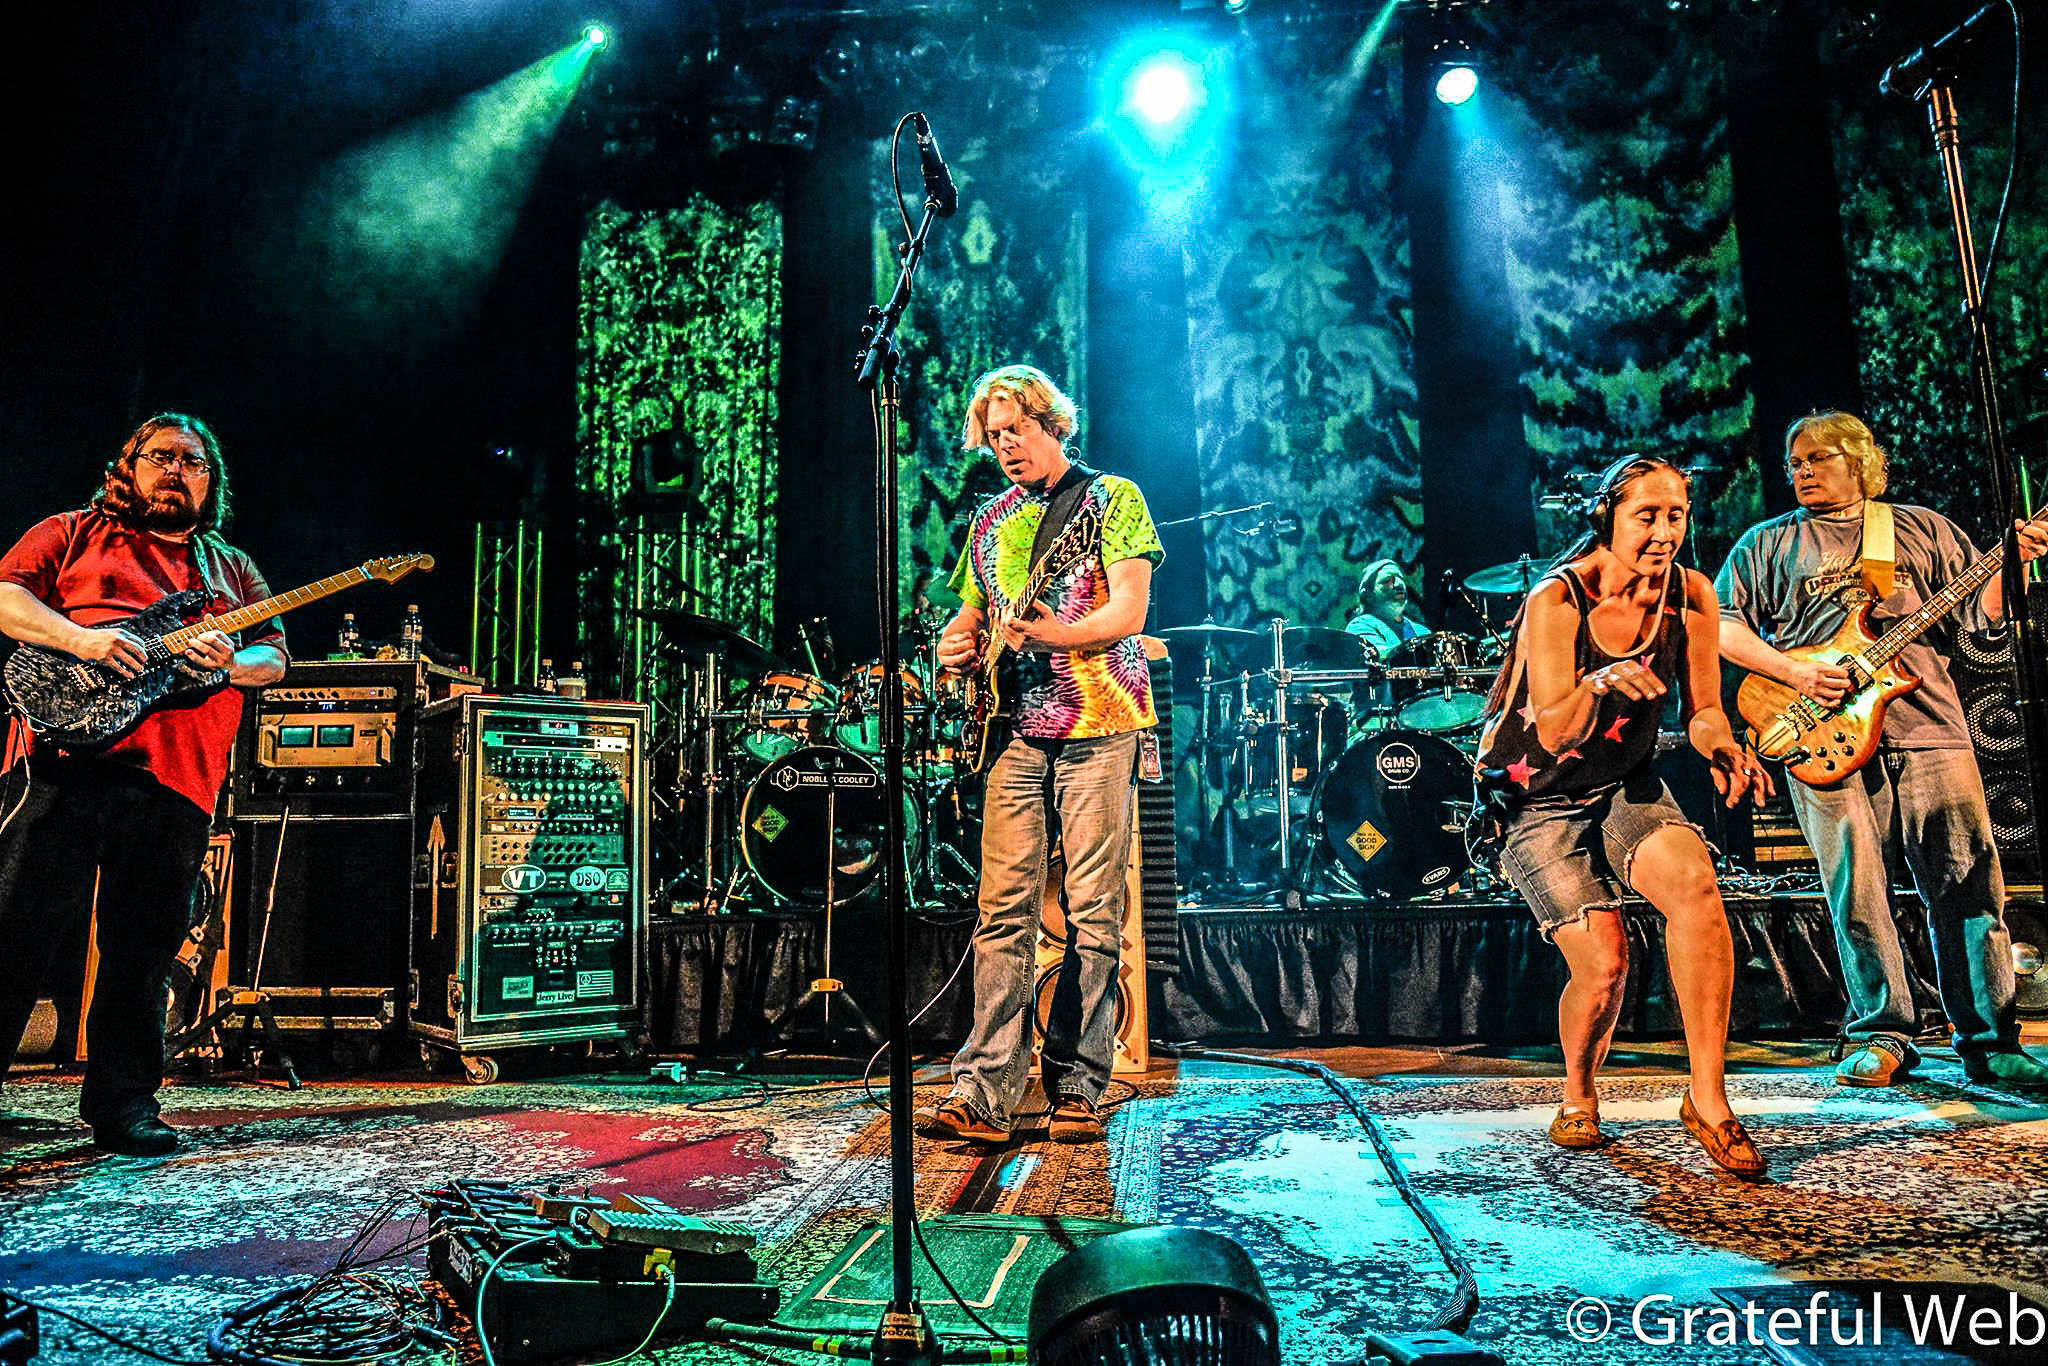 Fans Announces Dark Star Orchestra Free Livestreams on FRI, APR 10